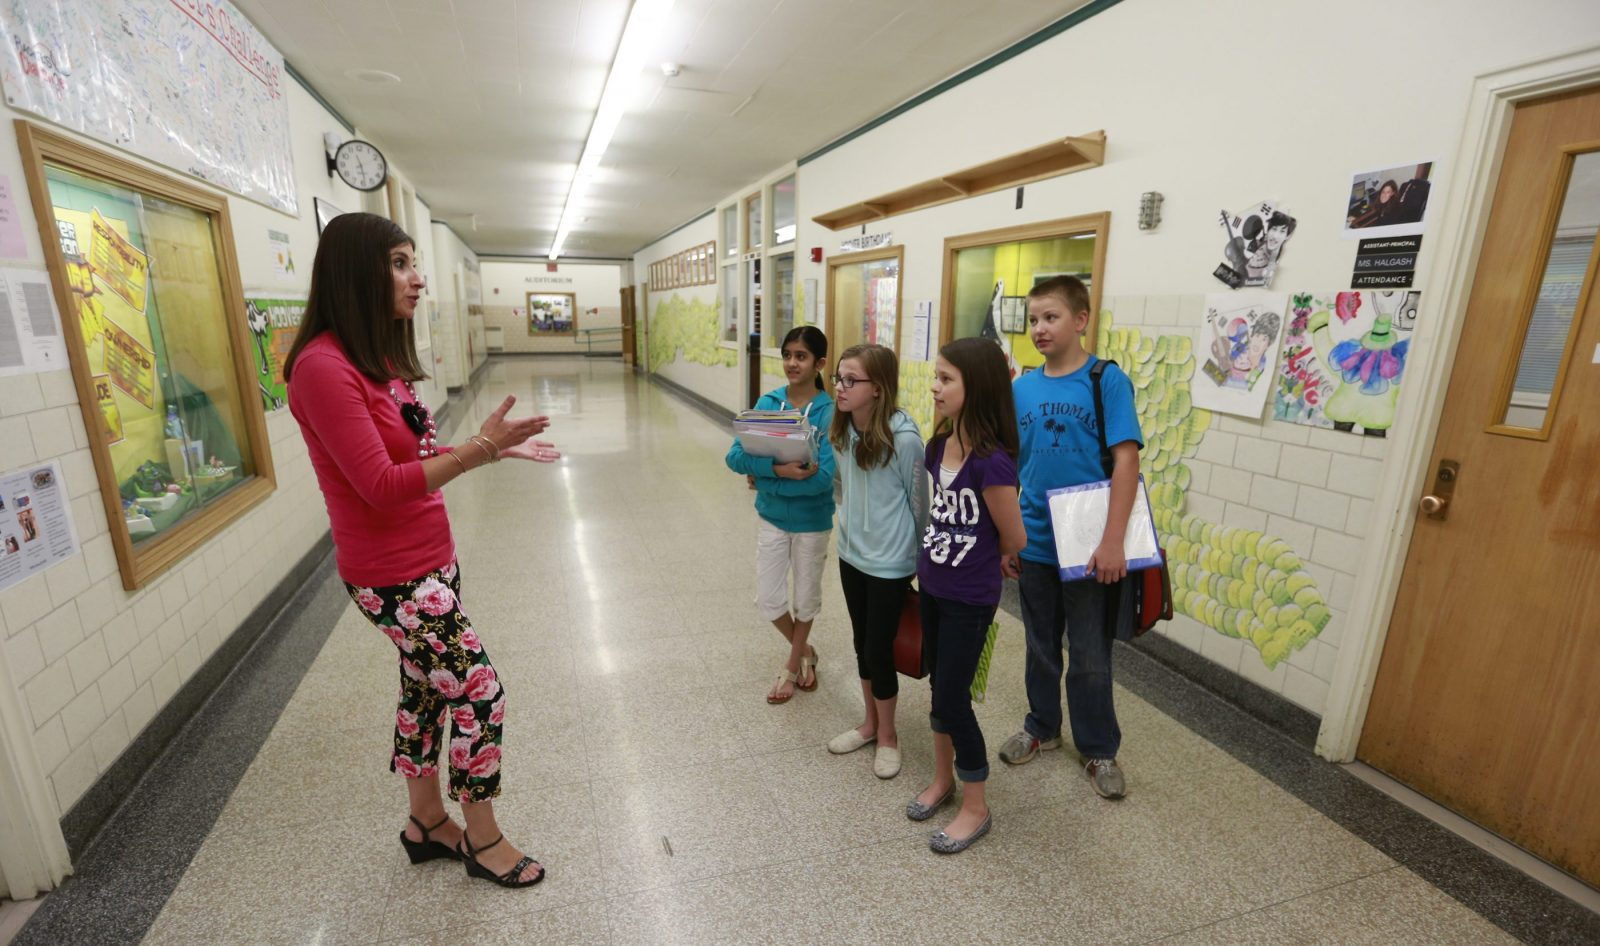 Principal Carmelina Persico talks with students at Hoover Middle School in the Town of Tonawanda. (John Hickey/Buffalo News)